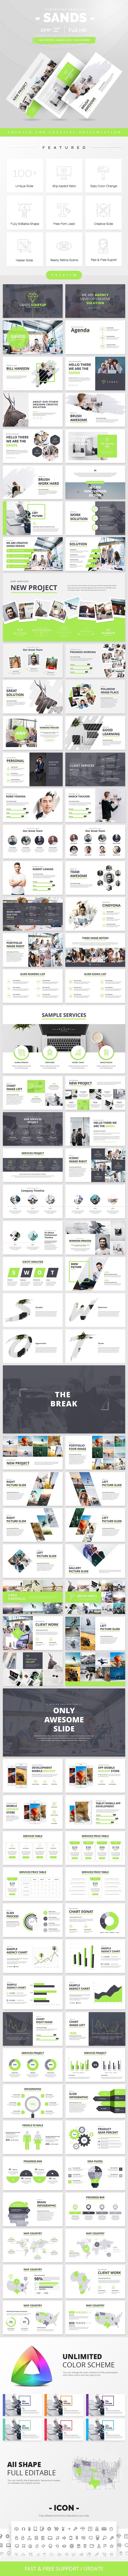 Sands Powerpoint Template